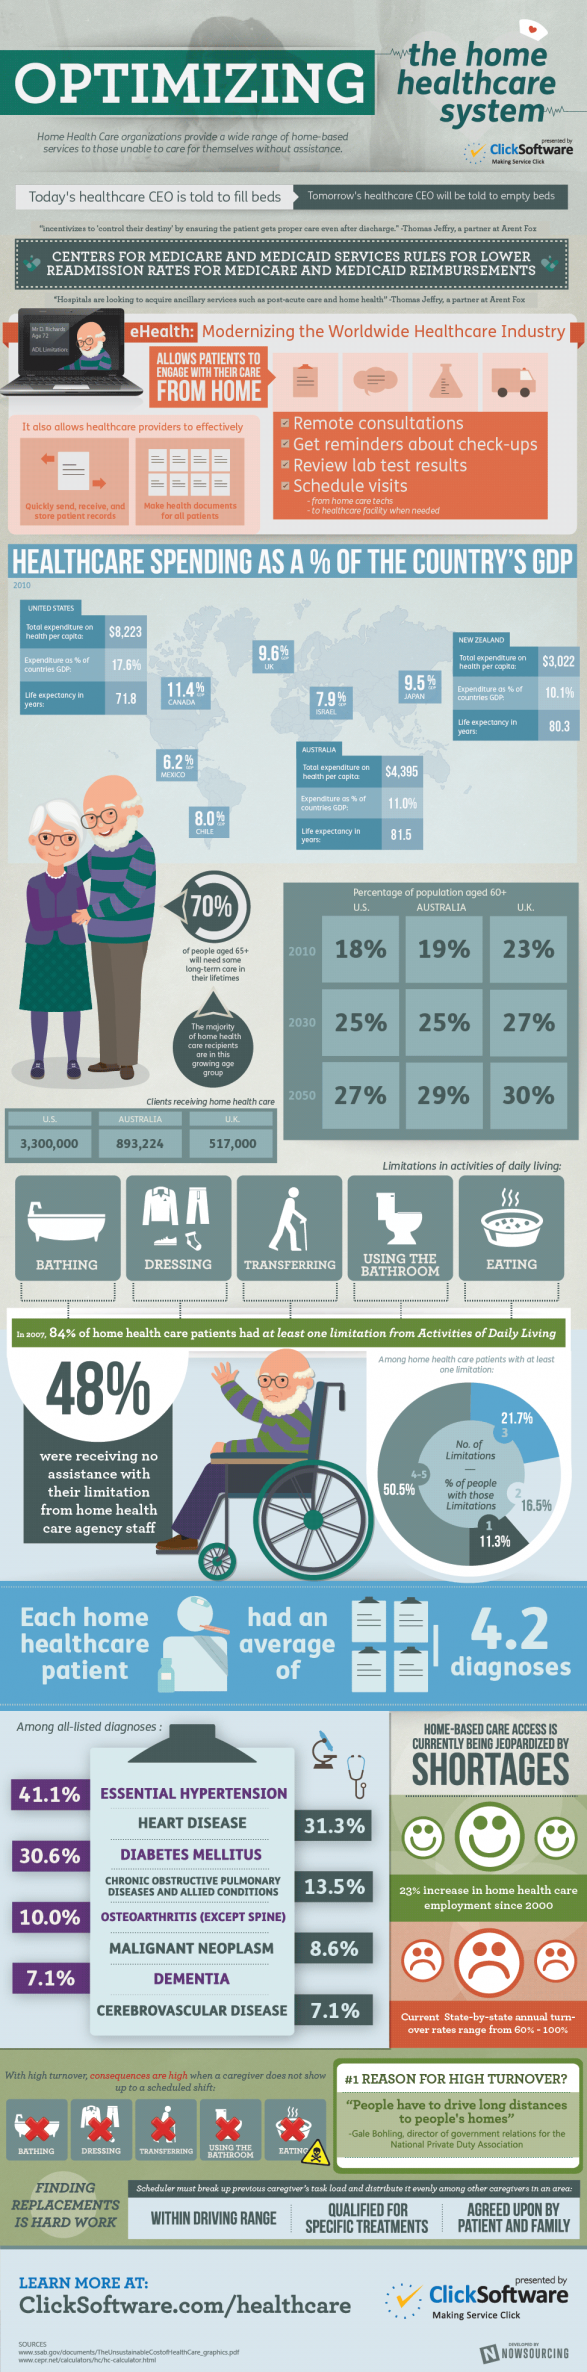 Optimizing the Home Healthcare System